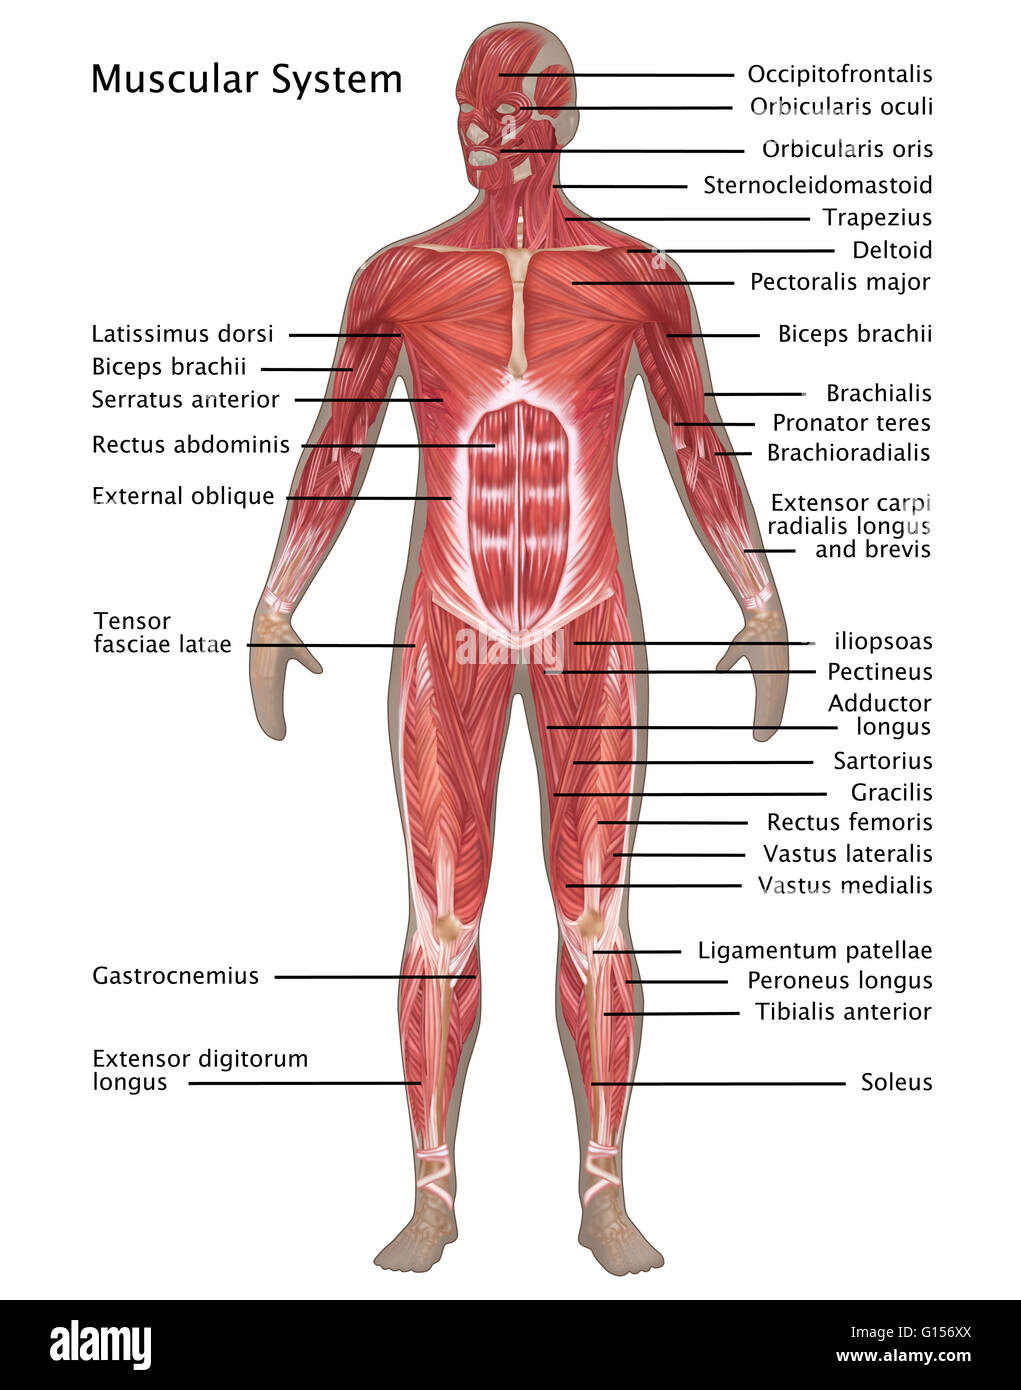 Illustration Of The Muscular System In The Male Anatomy Labeled